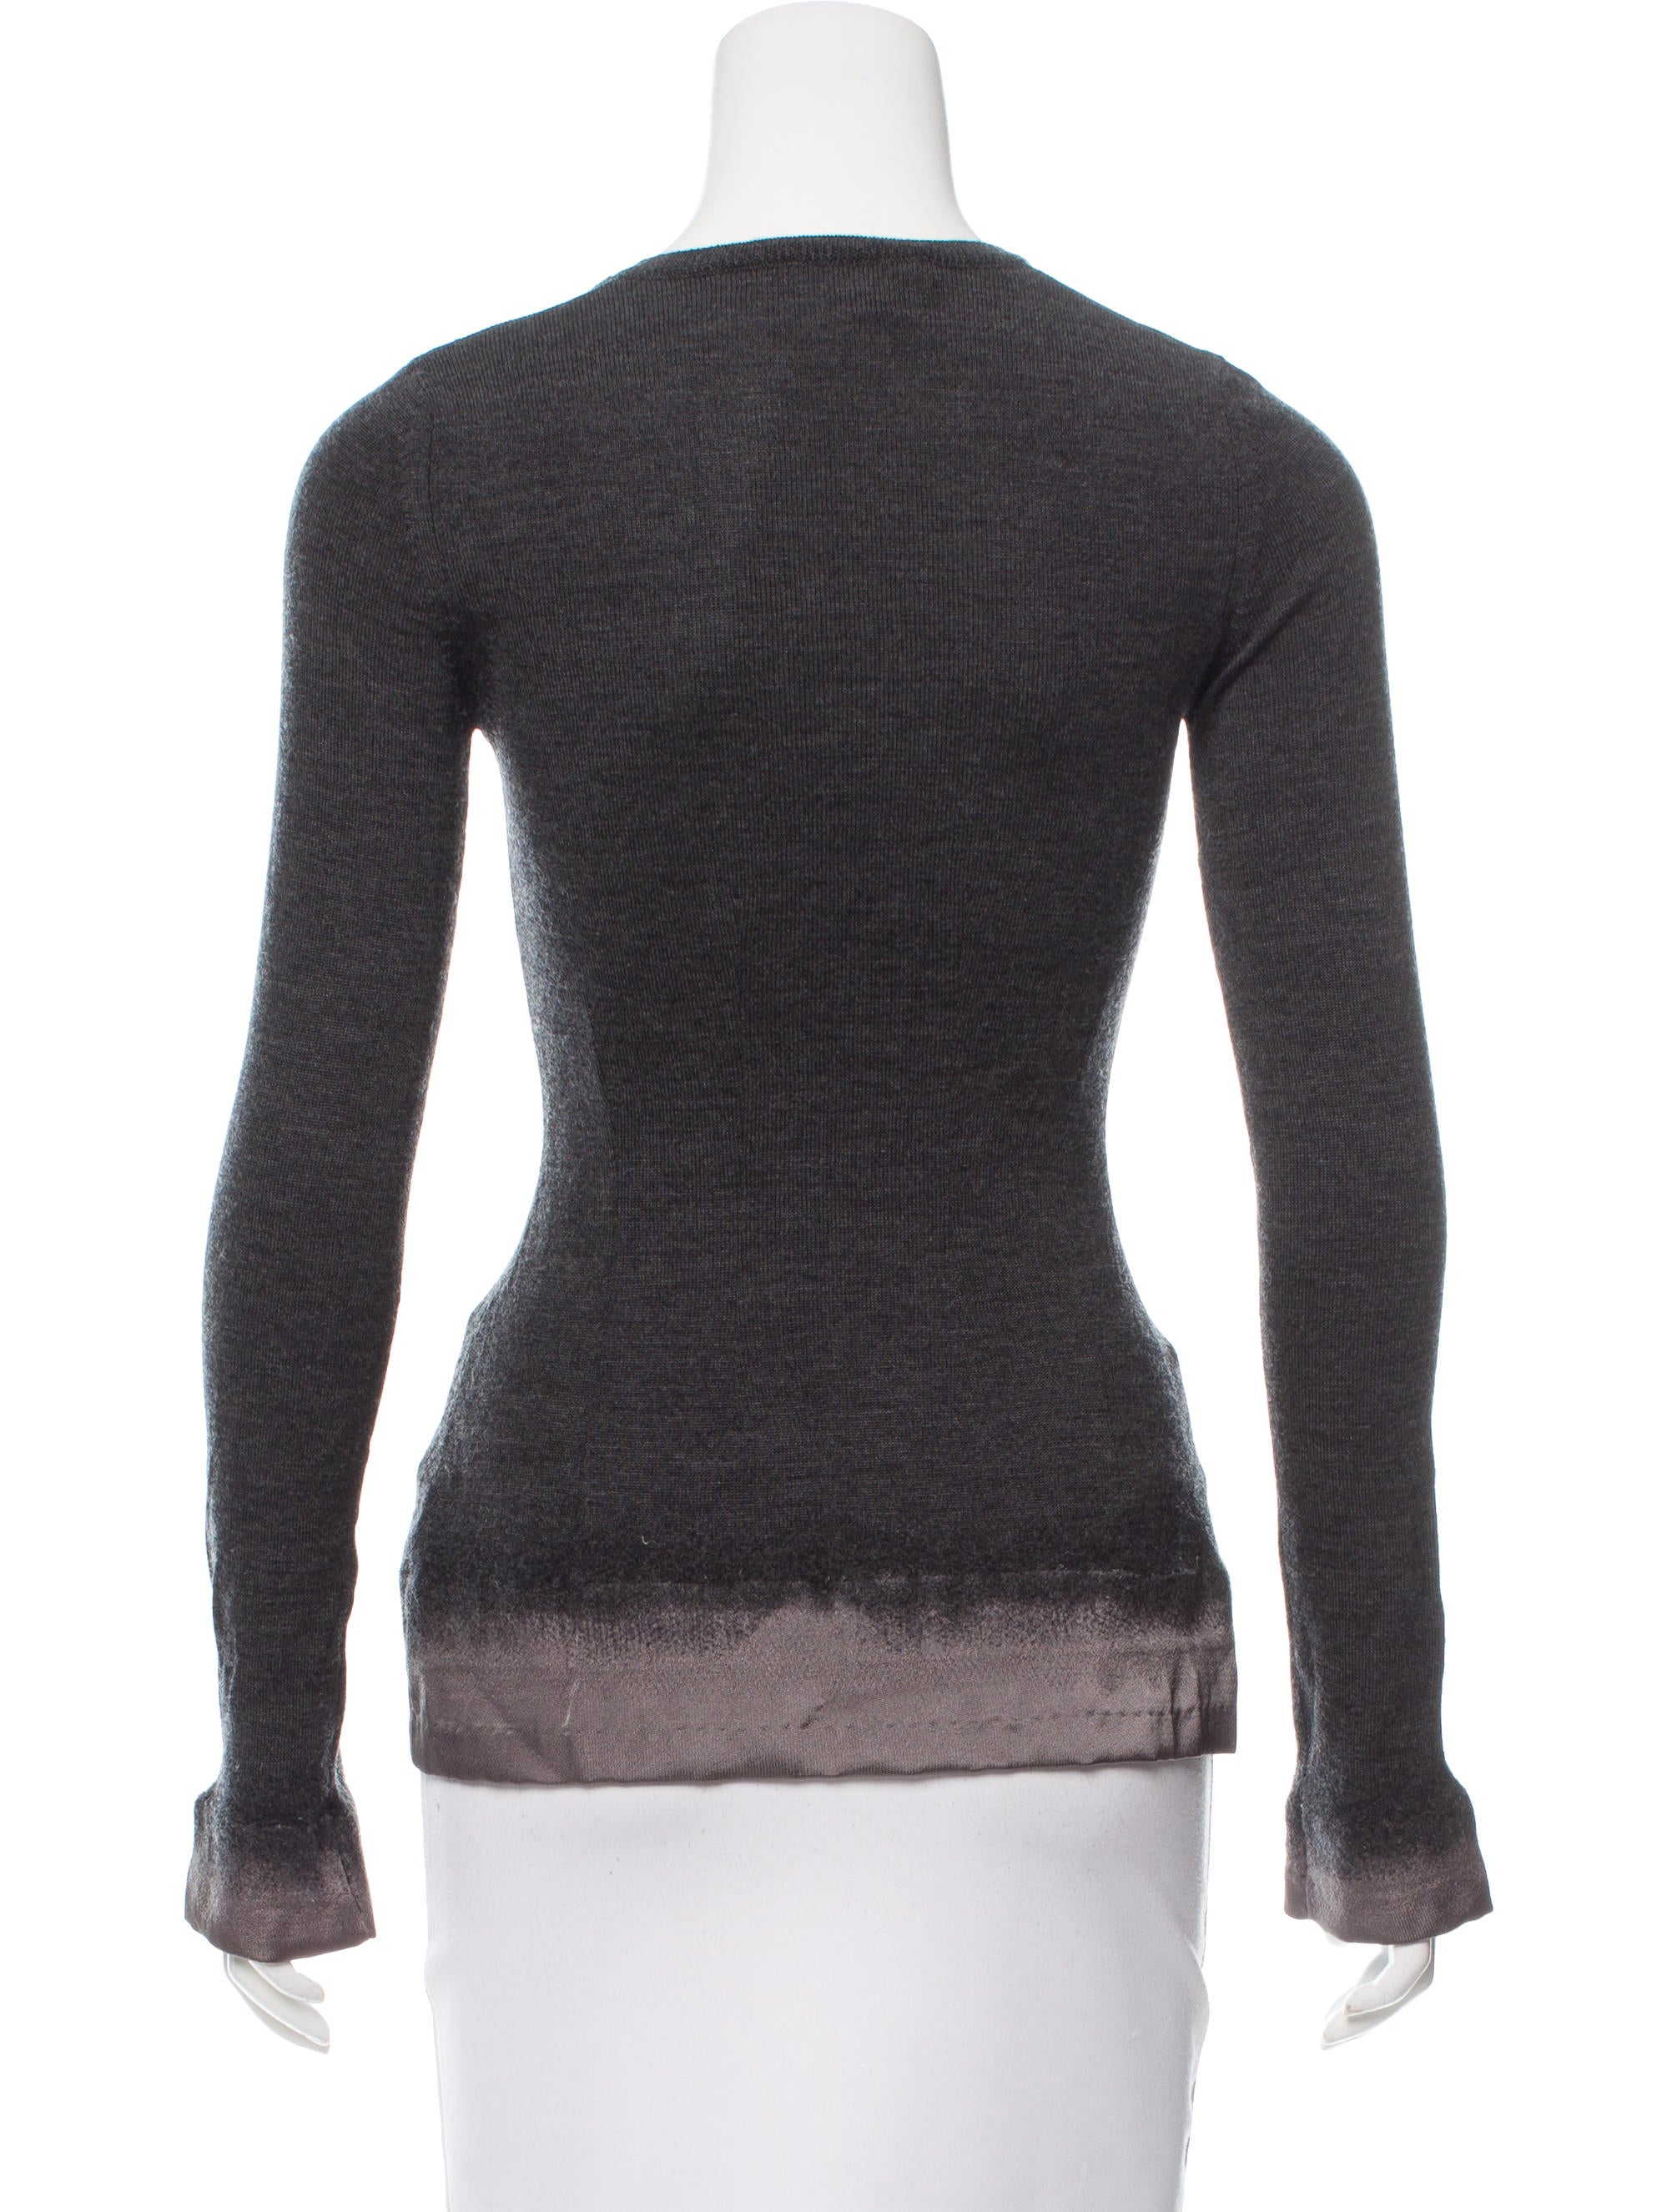 Clothing & Gear Women's Baselayers. Capilene® Baselayer. Versatile next-to-skin performance knits to help you stay warm. our Capilene® Air Bottoms offer amazing warmth and comfort range. An airy blend of 51% merino wool and 49% recycled polyester wicks moisture, resists odor and dries in a flash. W's Capilene® Thermal Weight Crew $